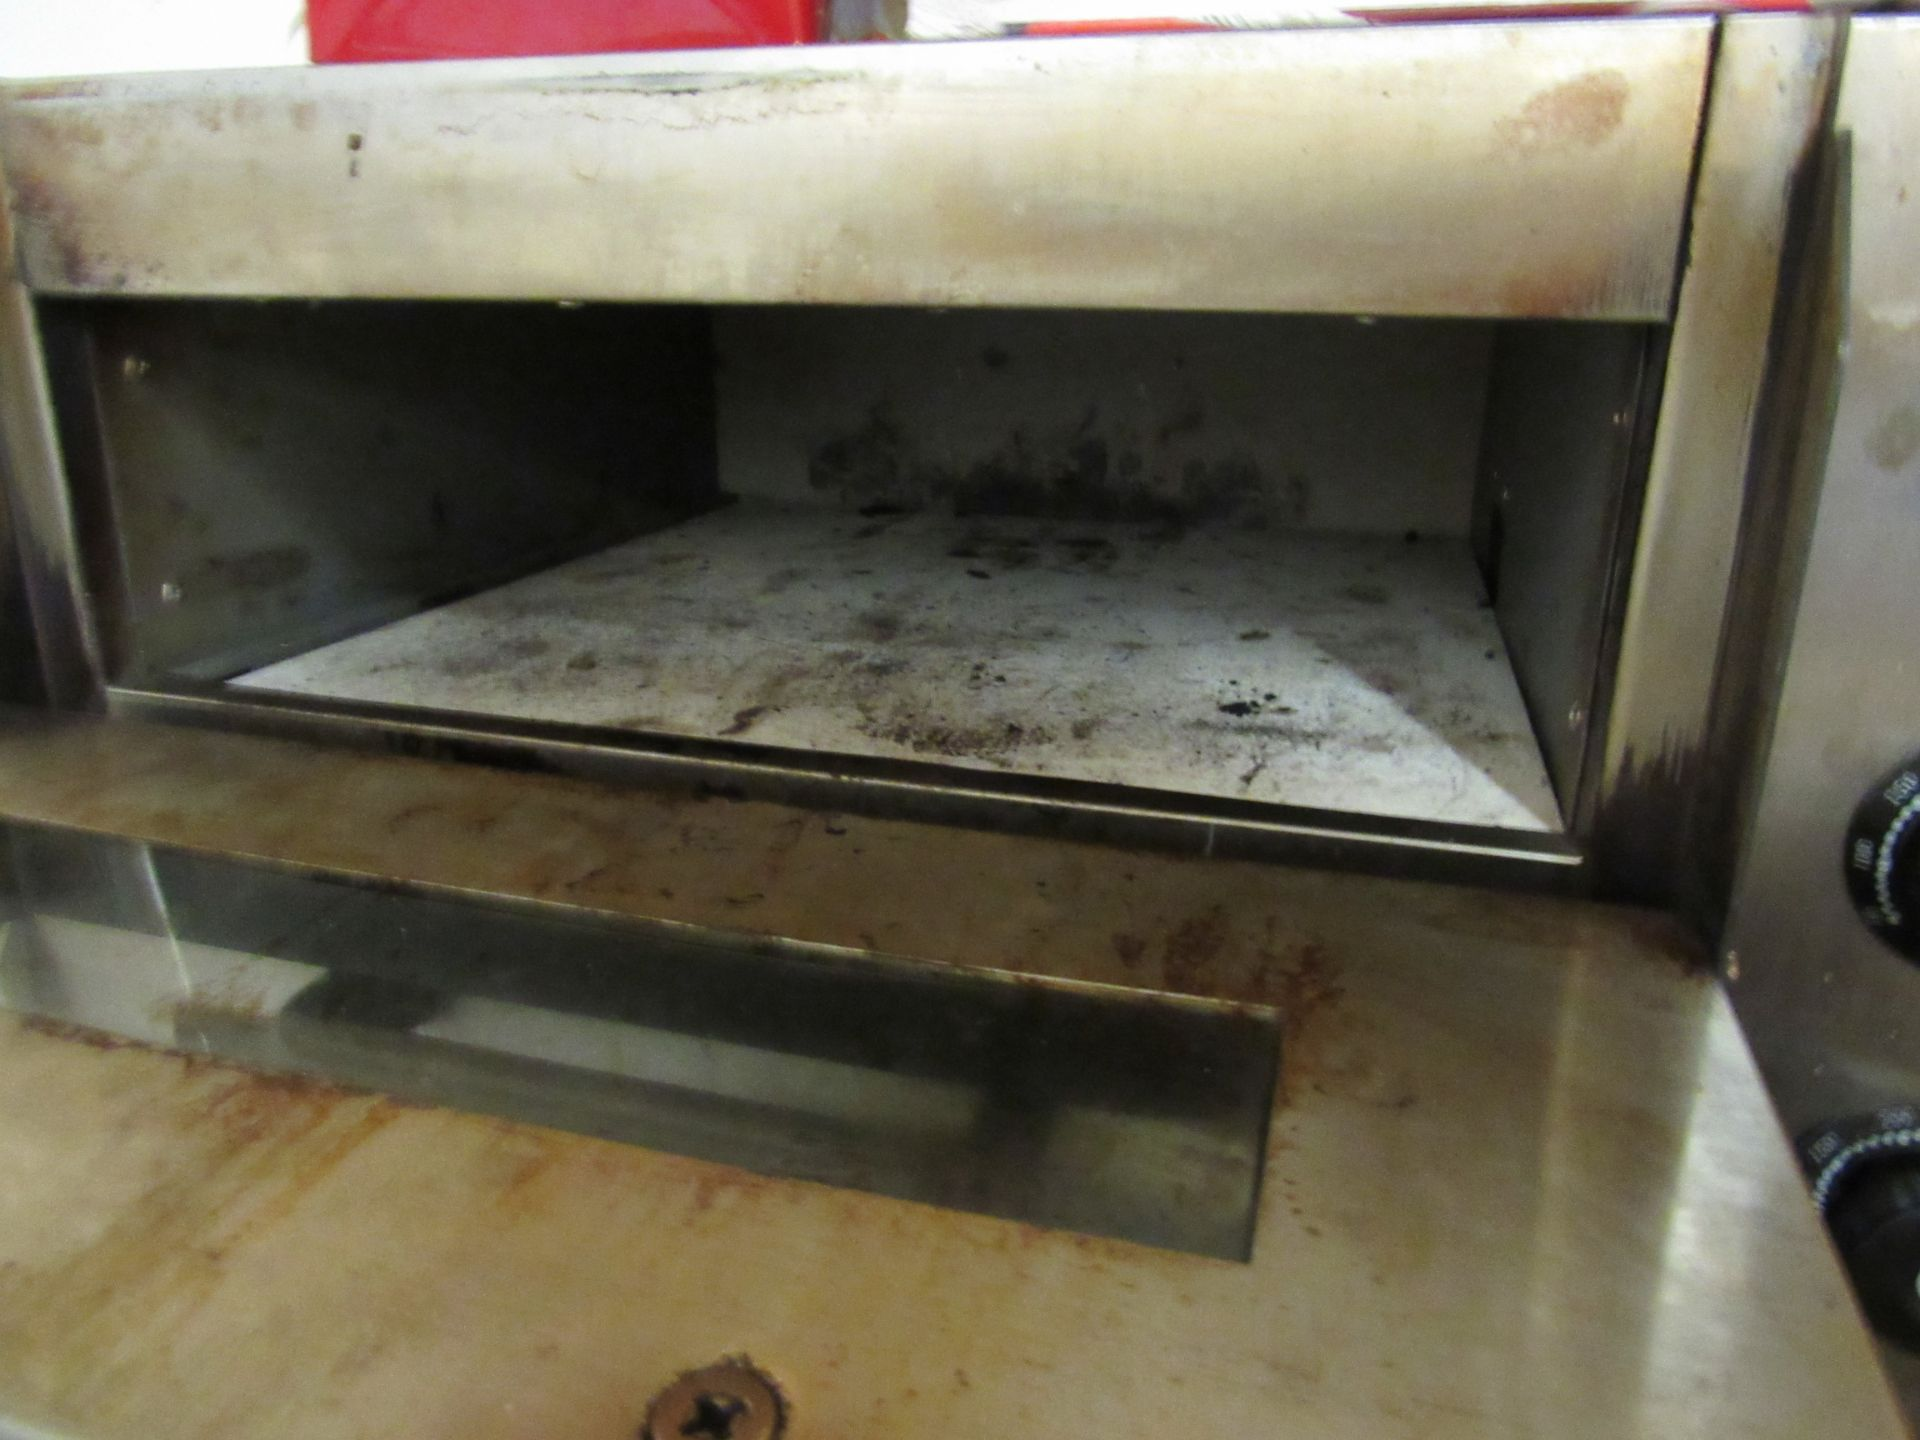 Electric Pizza Oven, P2PT 560x566x400mm - Image 3 of 5